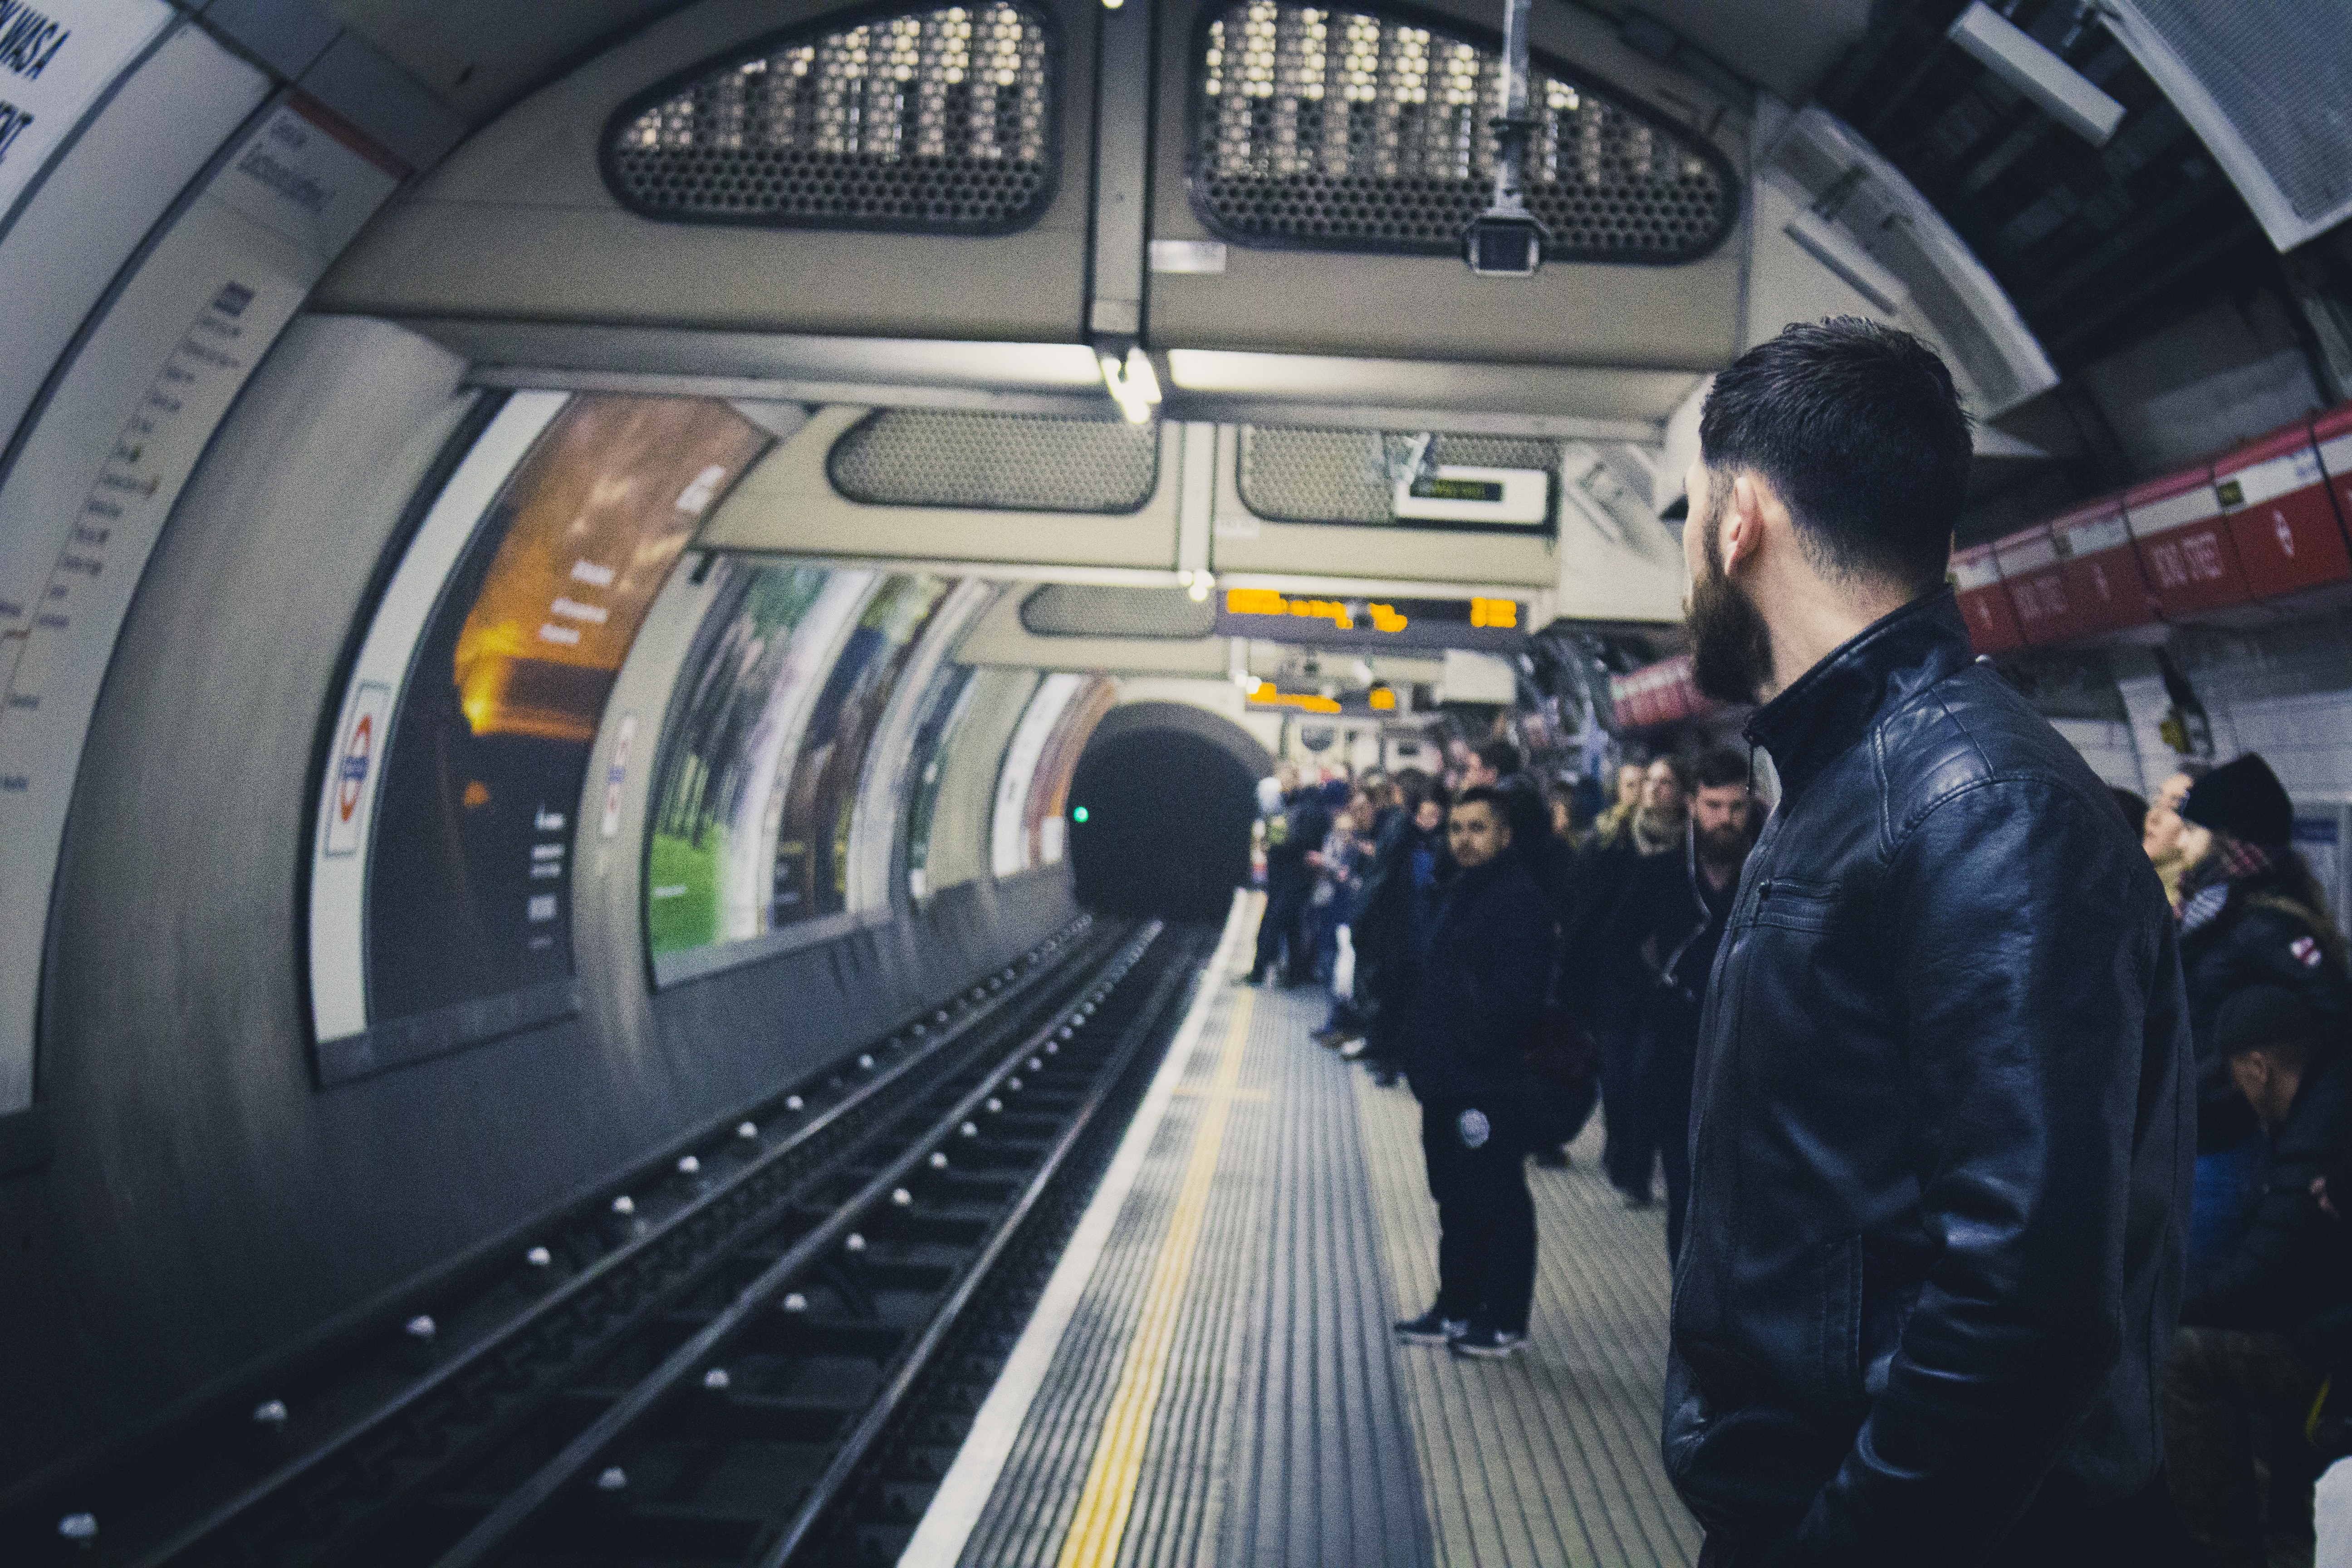 People waiting for a train in the London Underground